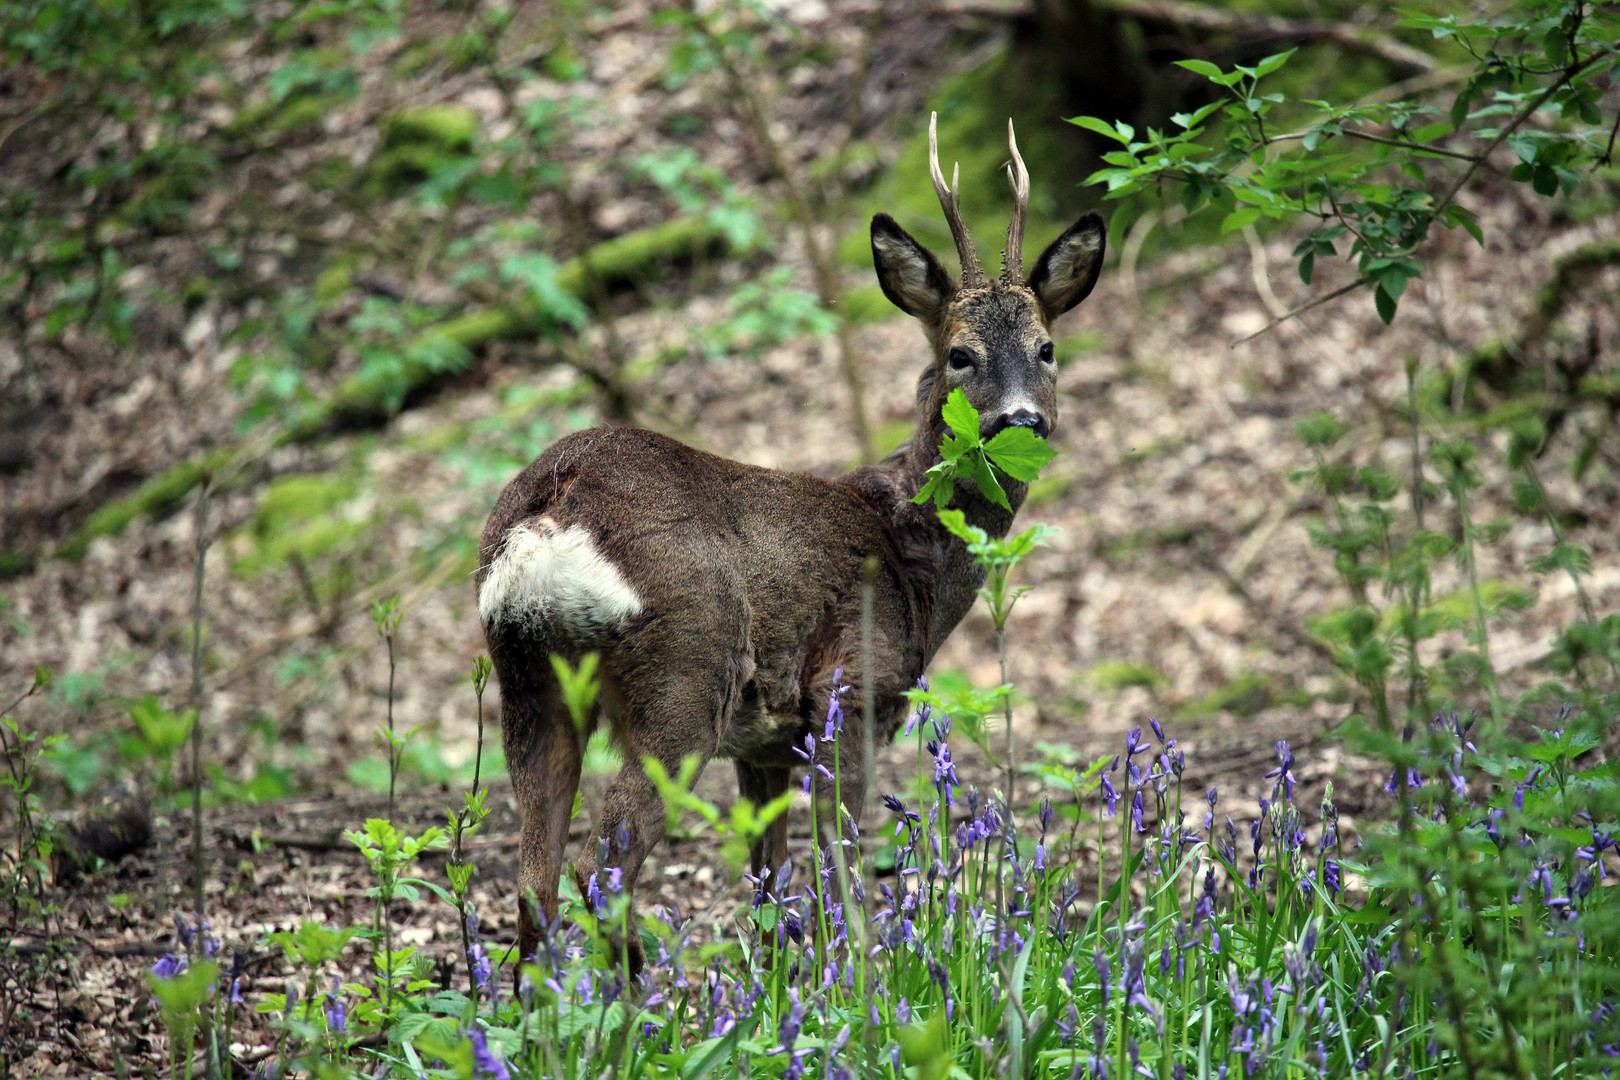 Hungry Deer at Otley Chevin Forest, Otley, West Yorkshire